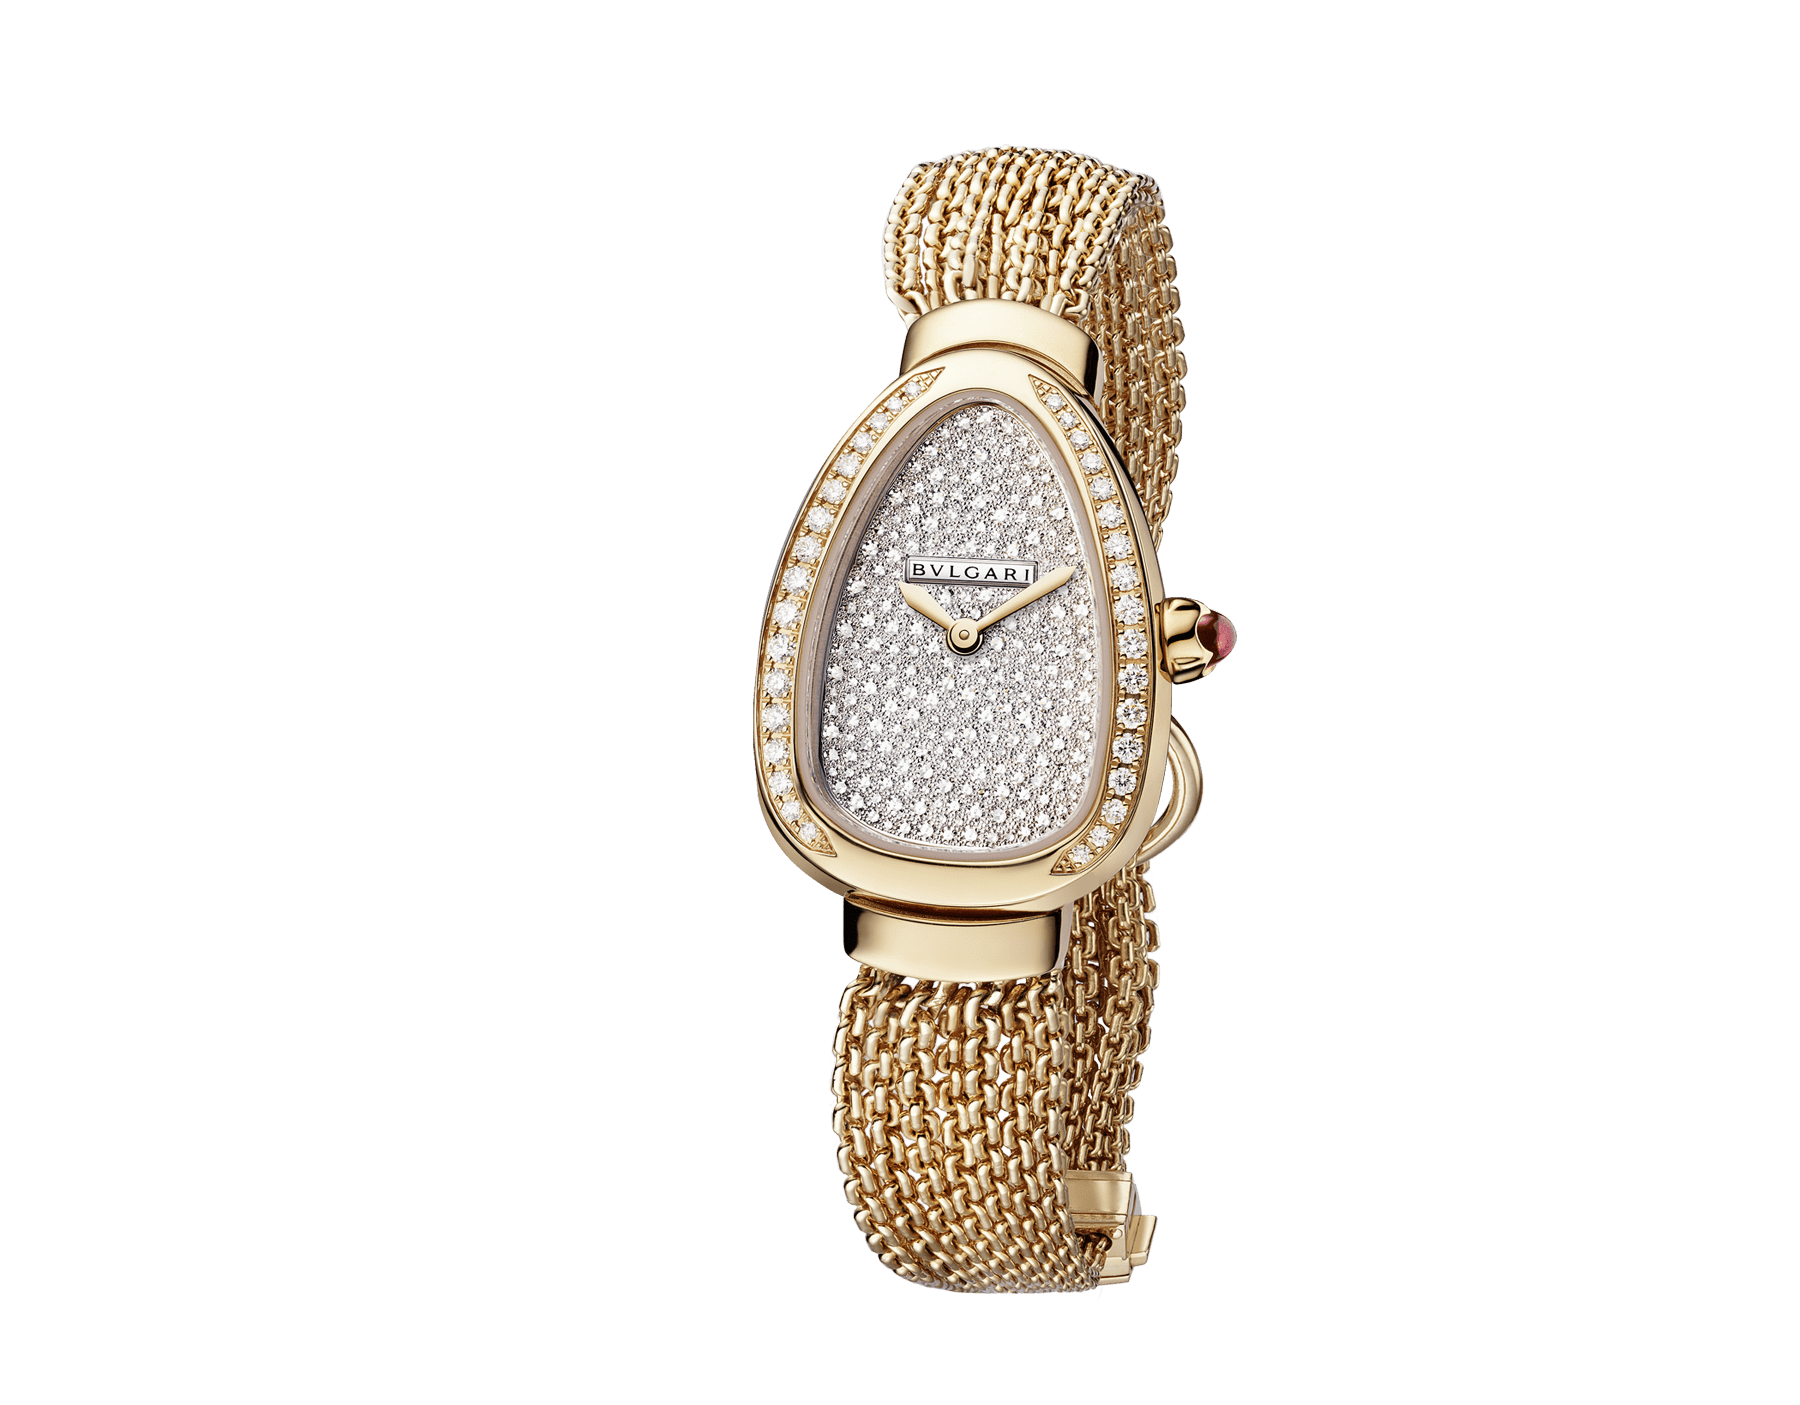 Serpenti watch with 18 kt rose gold case set with brilliant-cut diamonds, snow pavé dial and interchangeable single spiral chain bracelet in 18 kt rose gold 103063 image 2